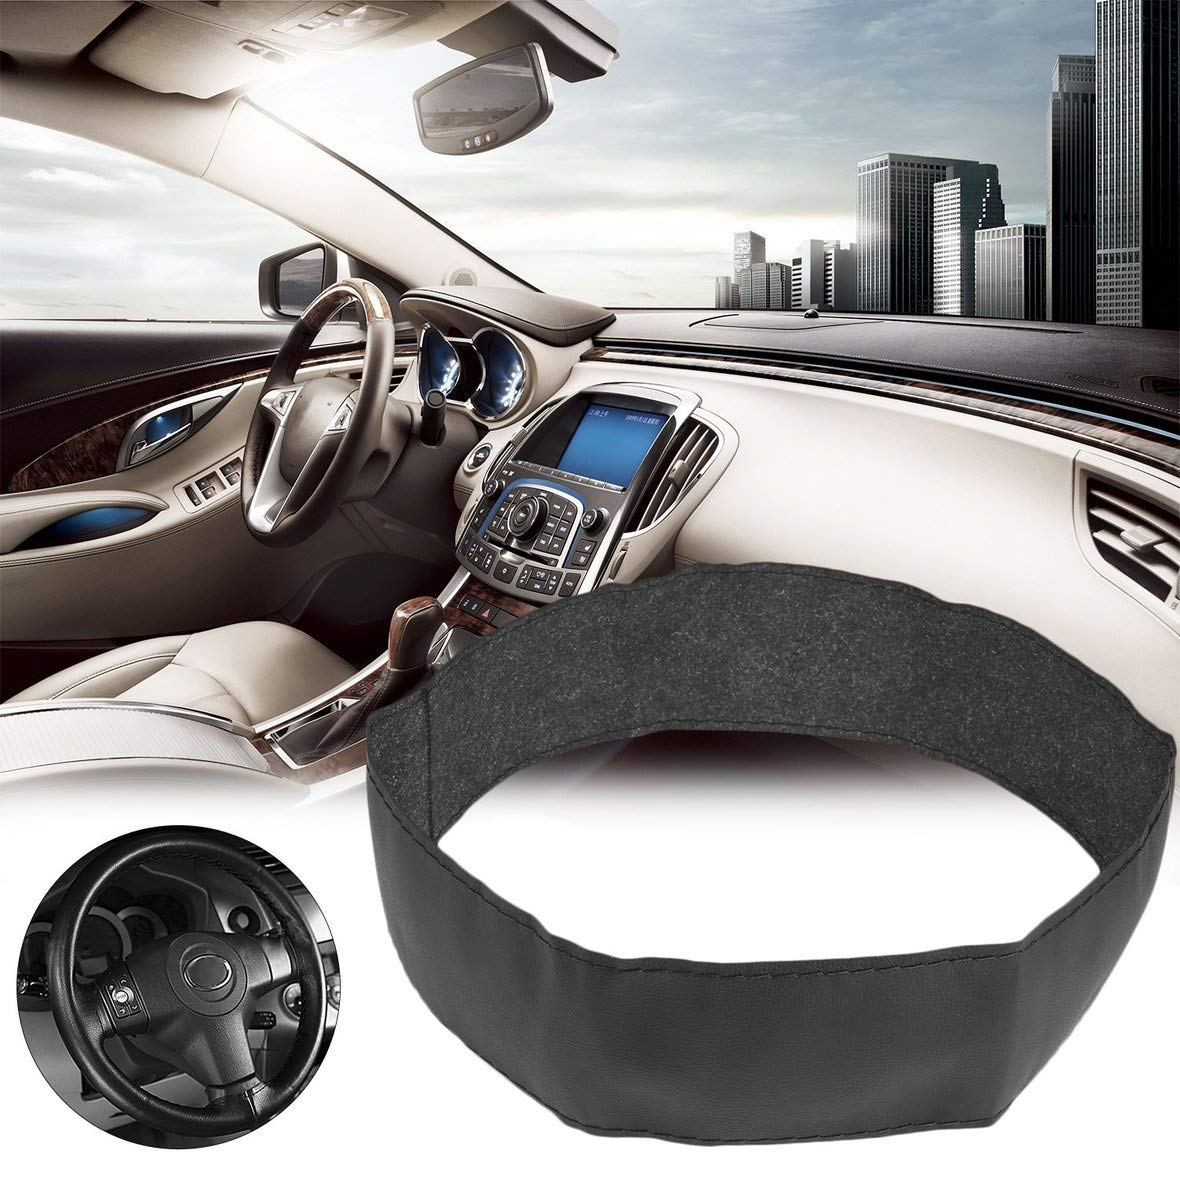 Tivolii Steering Wheel Cover Case Universal DIY Car Auto Vehicles Super Fiber Leather Steering Wheel Cover Case with Needle and Thread Black